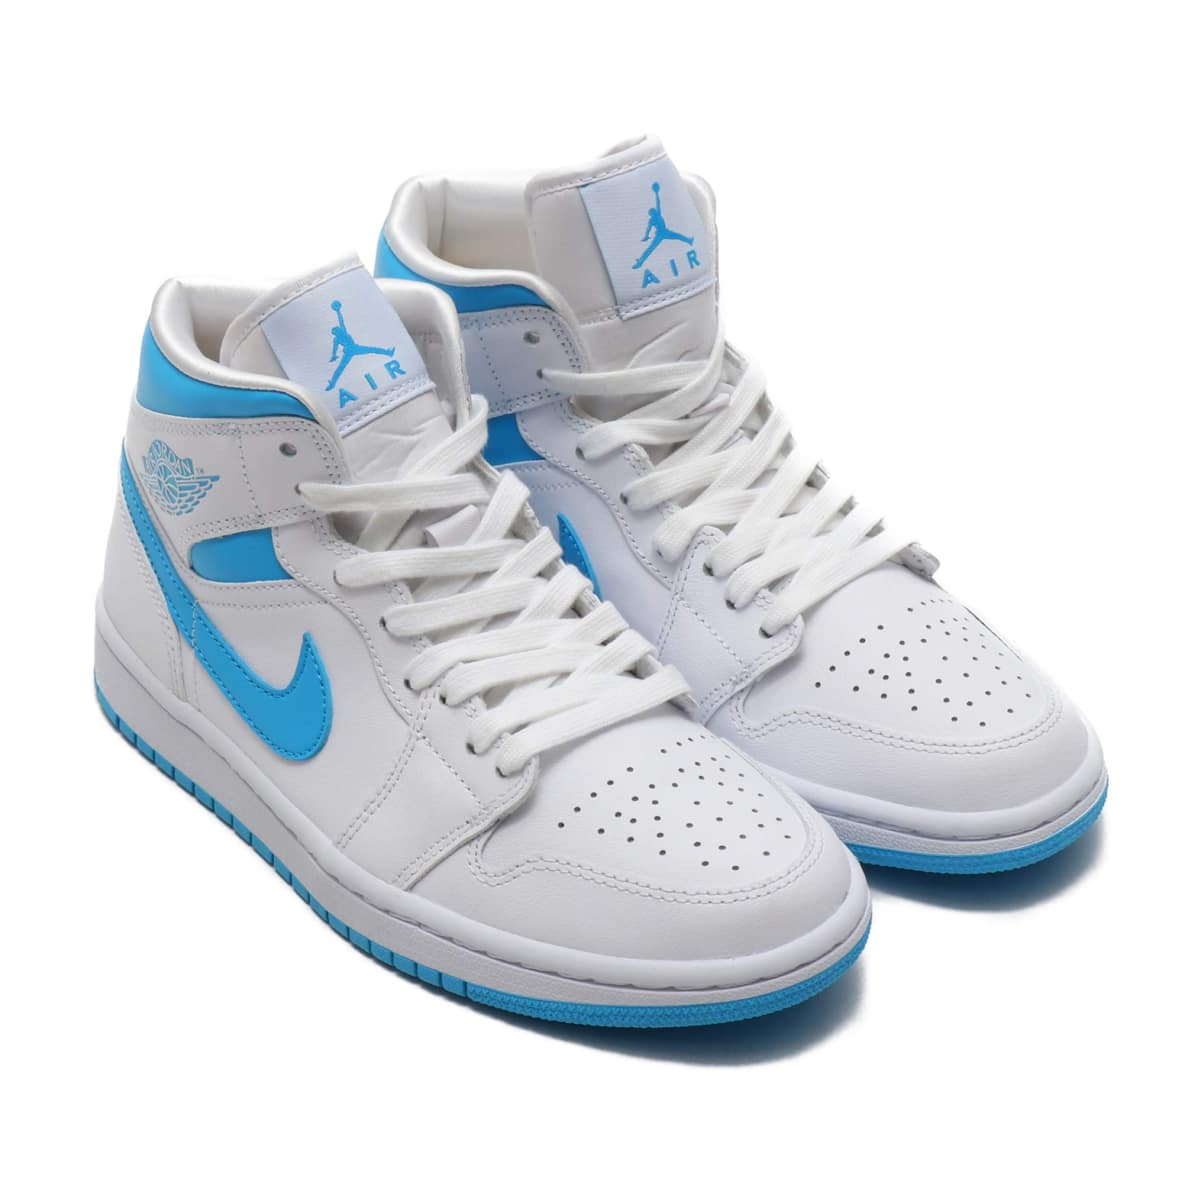 NIKE WMNS AIR JORDAN 1 MID WHITE/DK POWDER BLUE-WHITE 20SP-S_photo_large